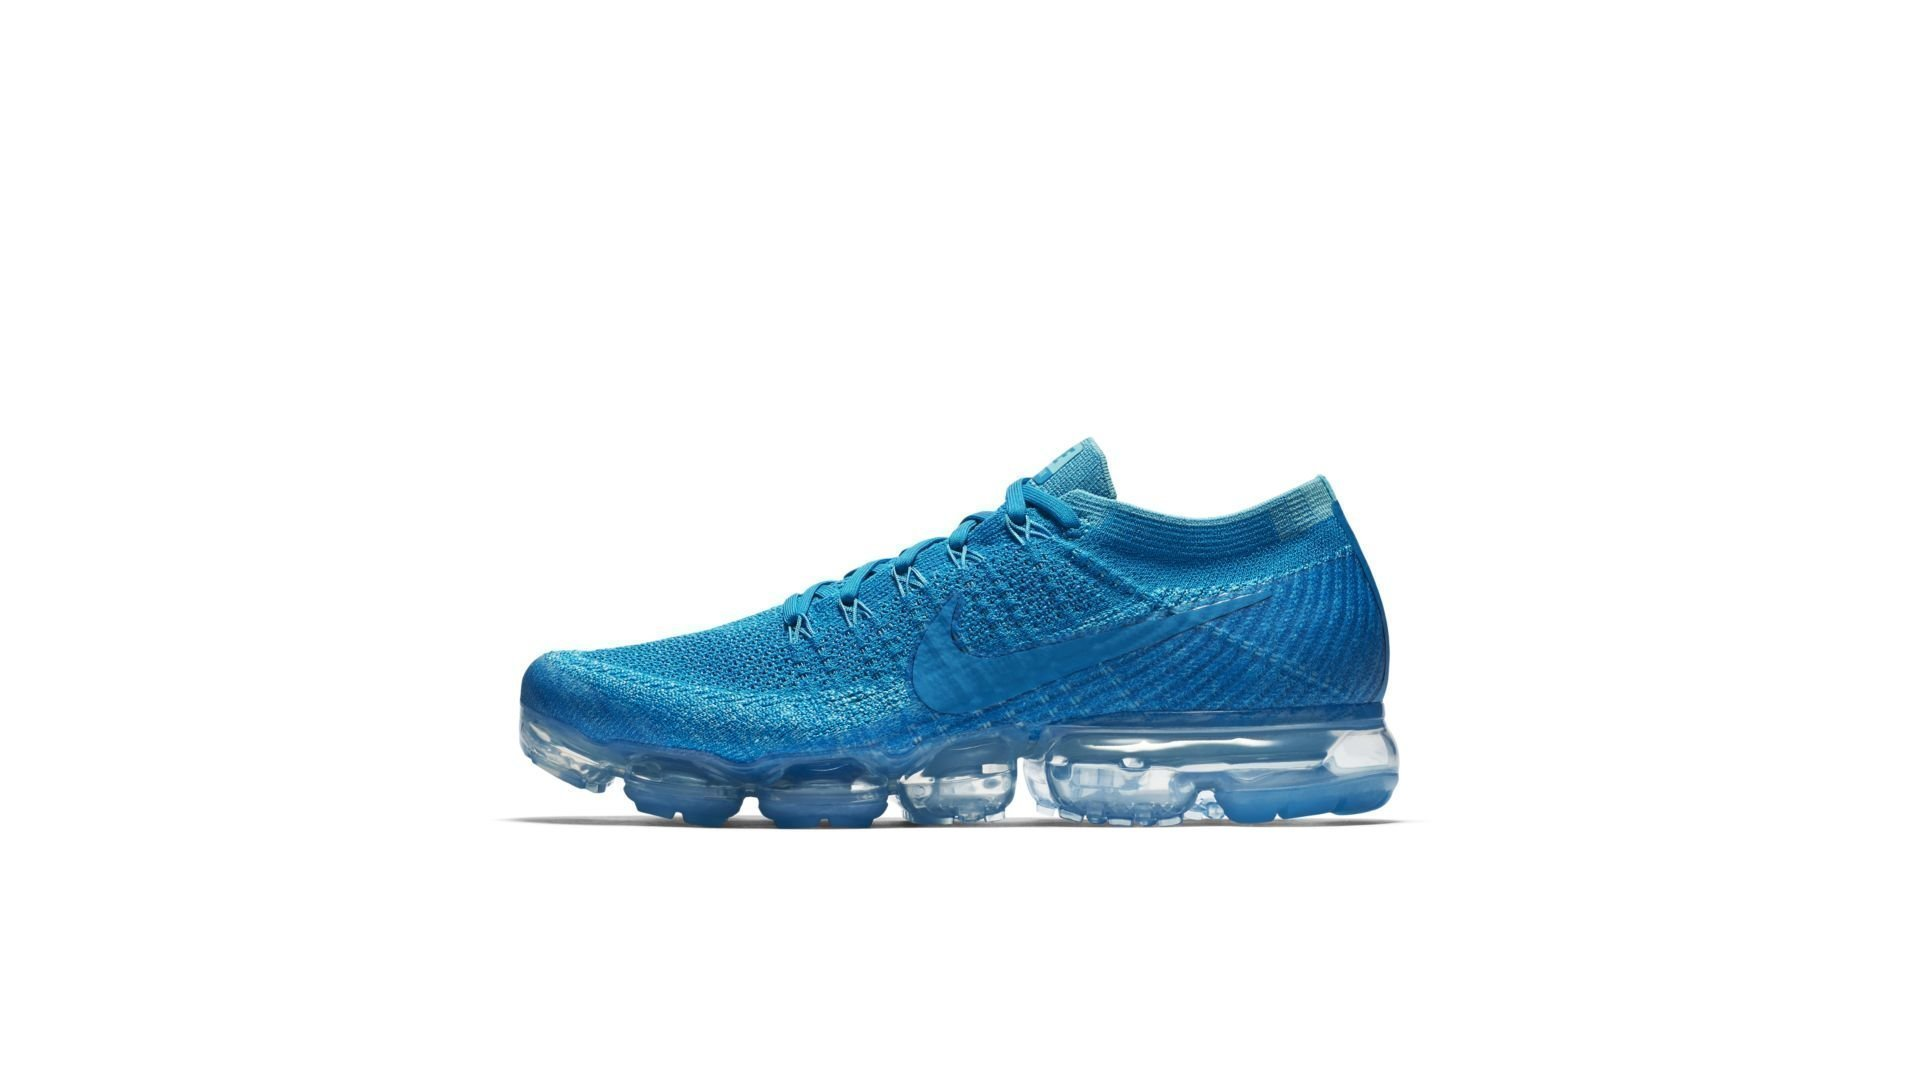 Nike Air Vapormax Light Blue Orbit (849558-402)